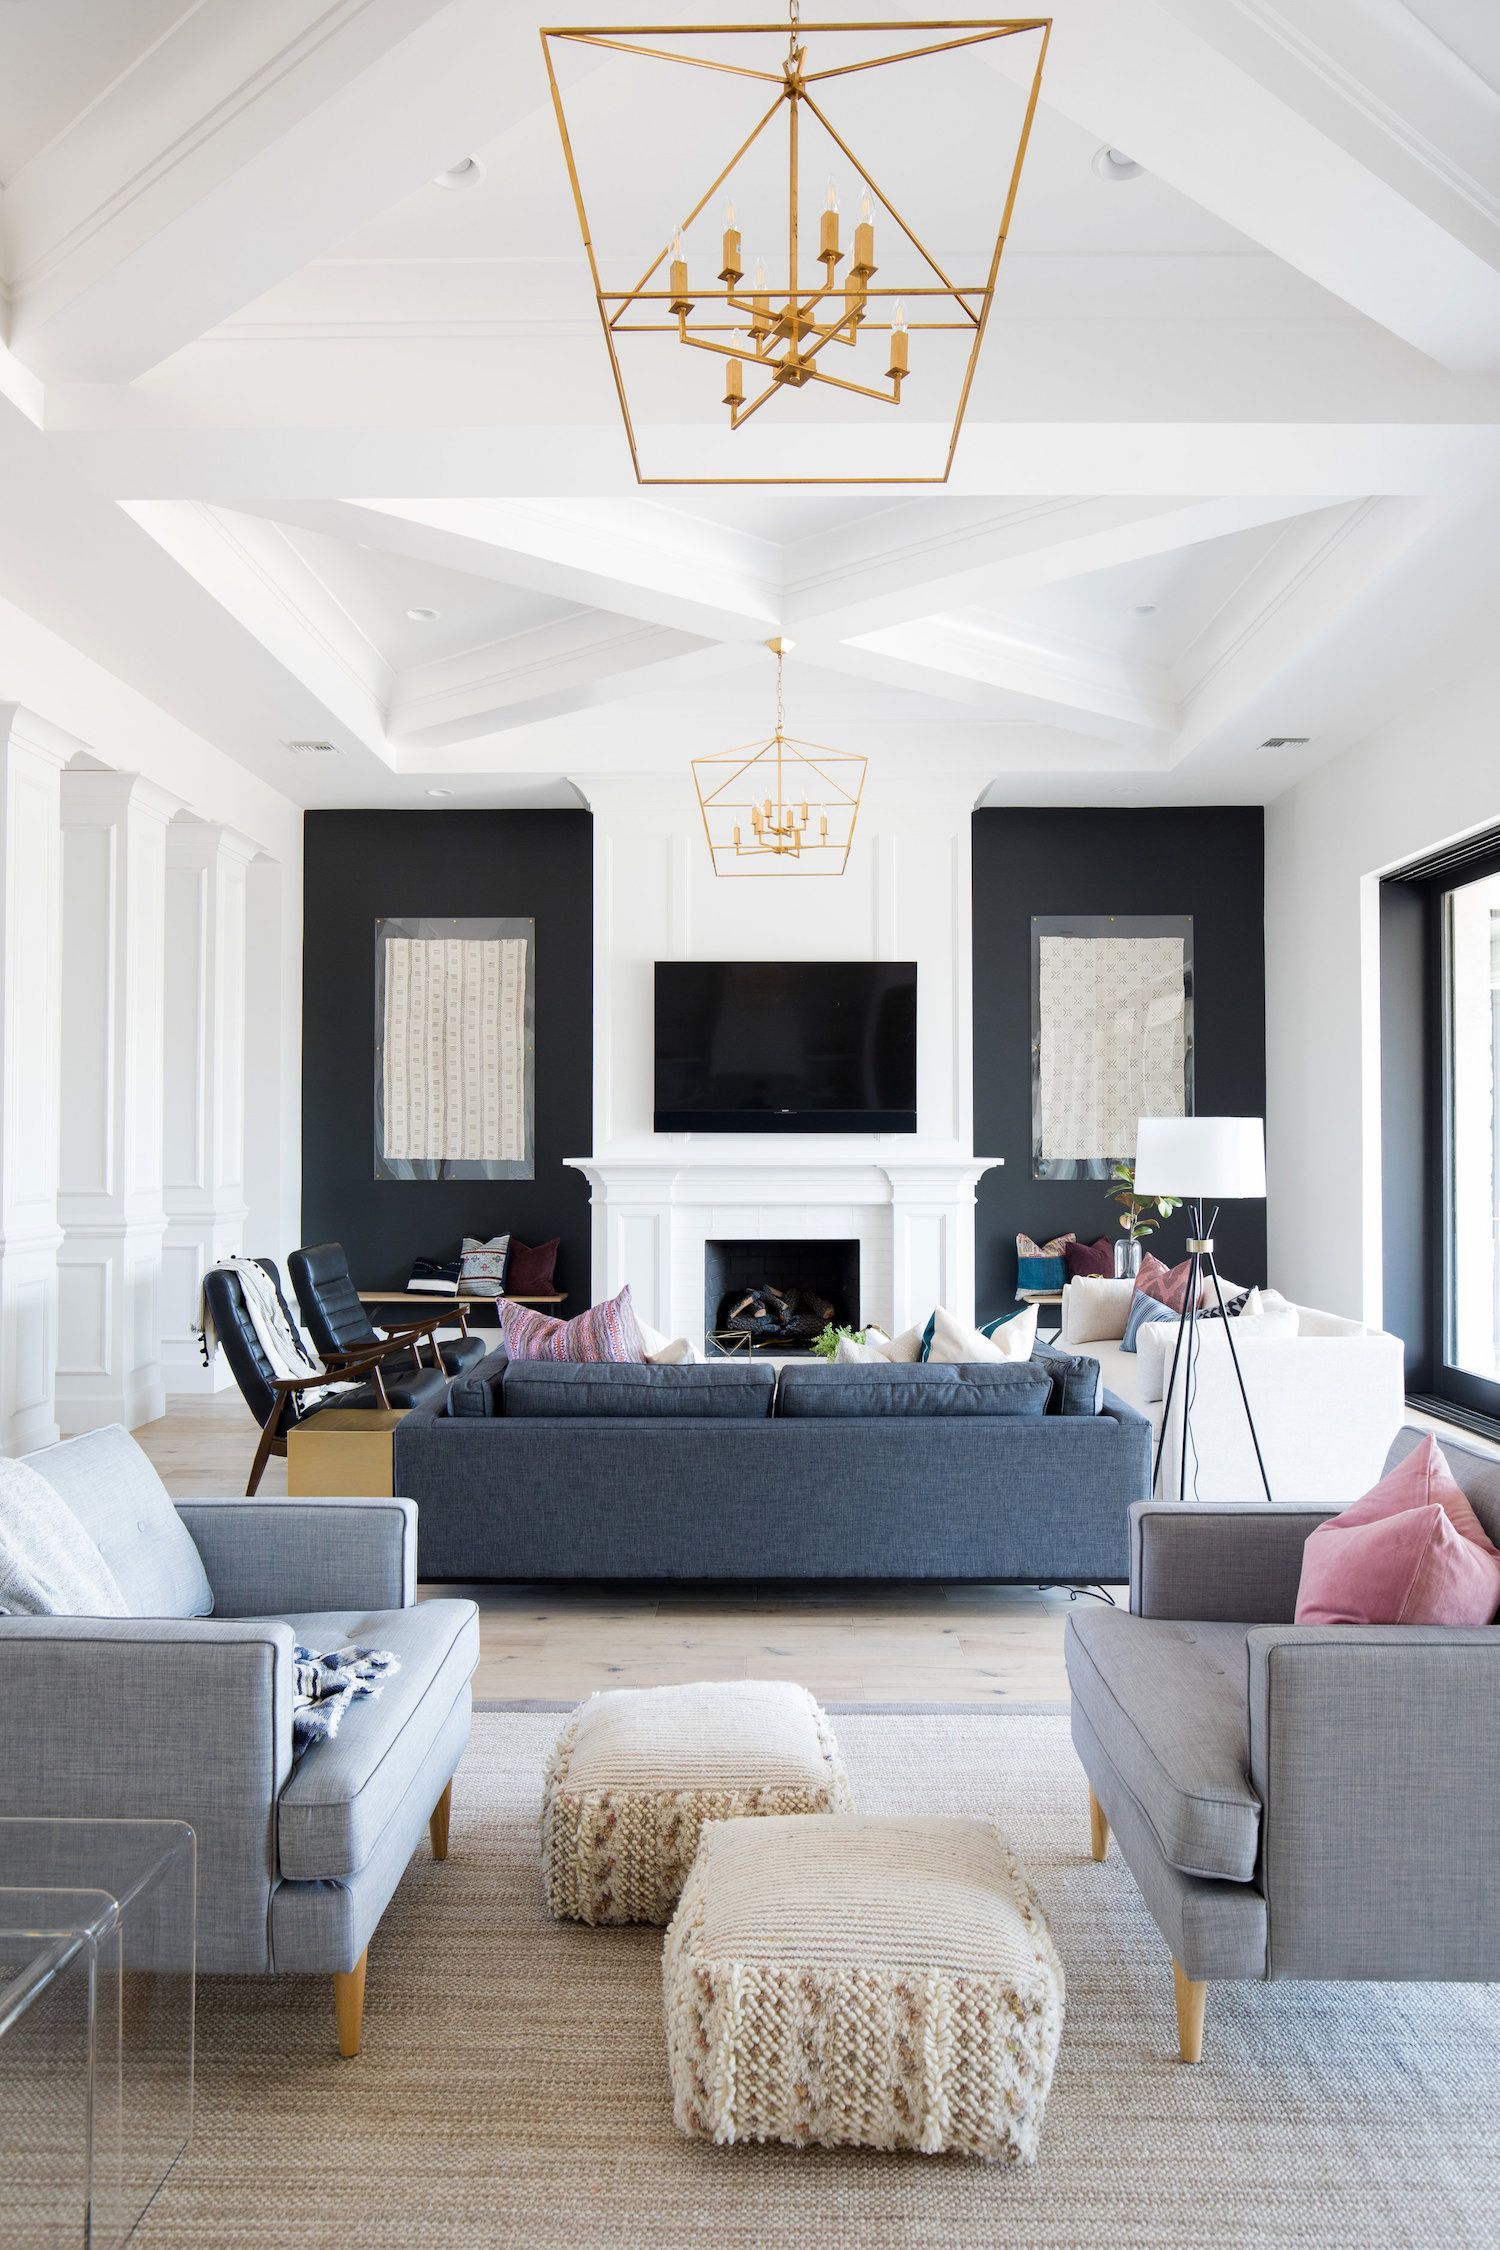 An Inspiring Interview With E Interiors A Look Inside Their Latest Dream Home